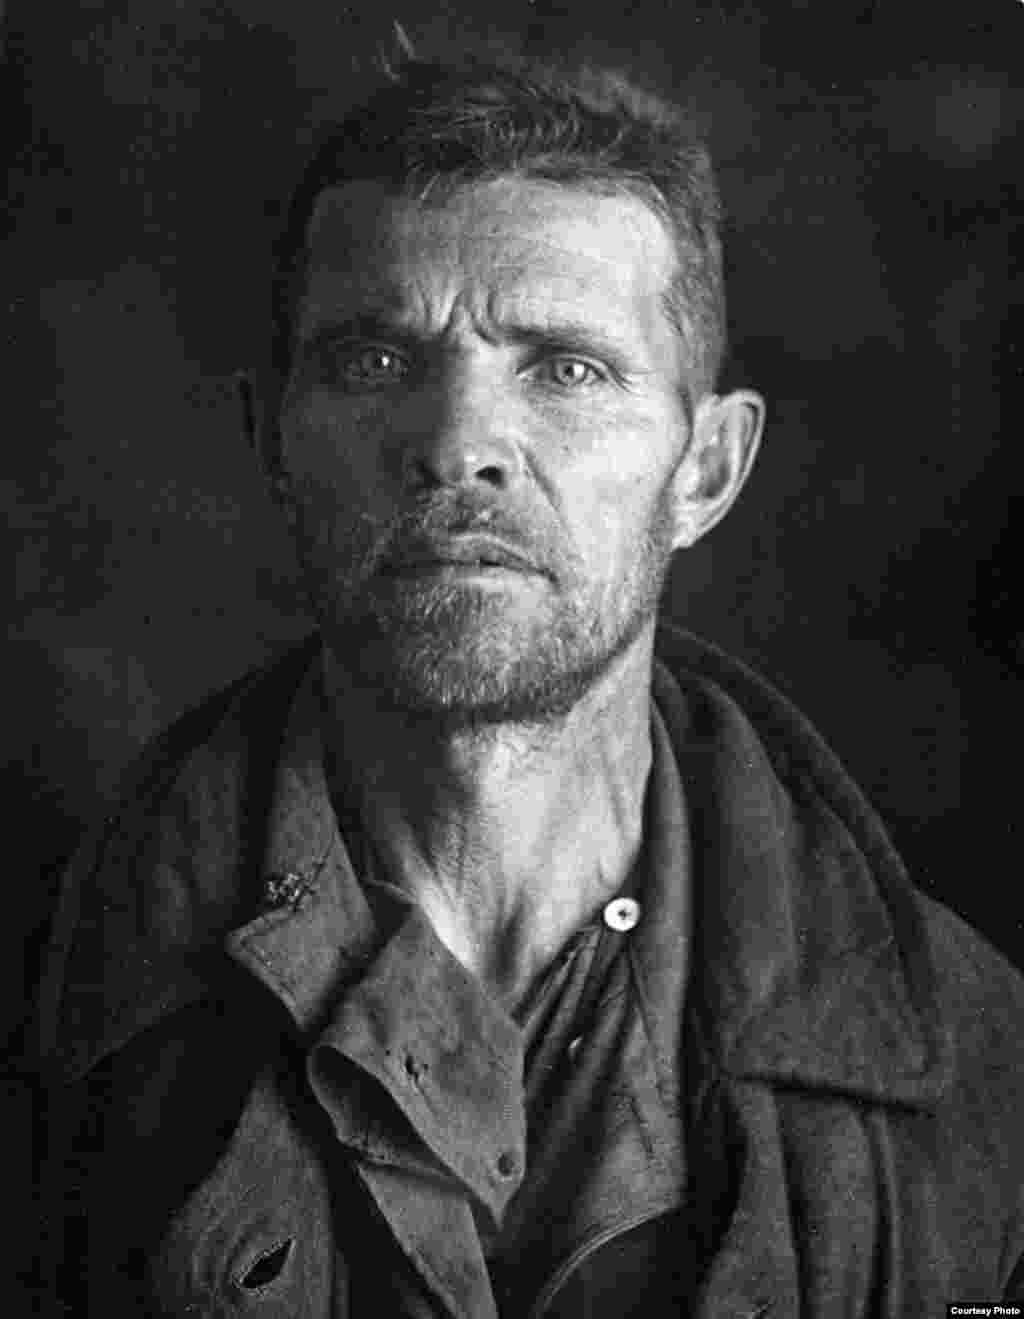 Nikolai Vasiliyevich Abramov: Russian; born in 1890 in Lukerino village, Moscow Oblast; primary education; no party affiliation; collective farm foreman; lived in Lukerino. Arrested on October 5, 1937. Sentenced to death on October 17, 1937. Executed on October 21, 1937.